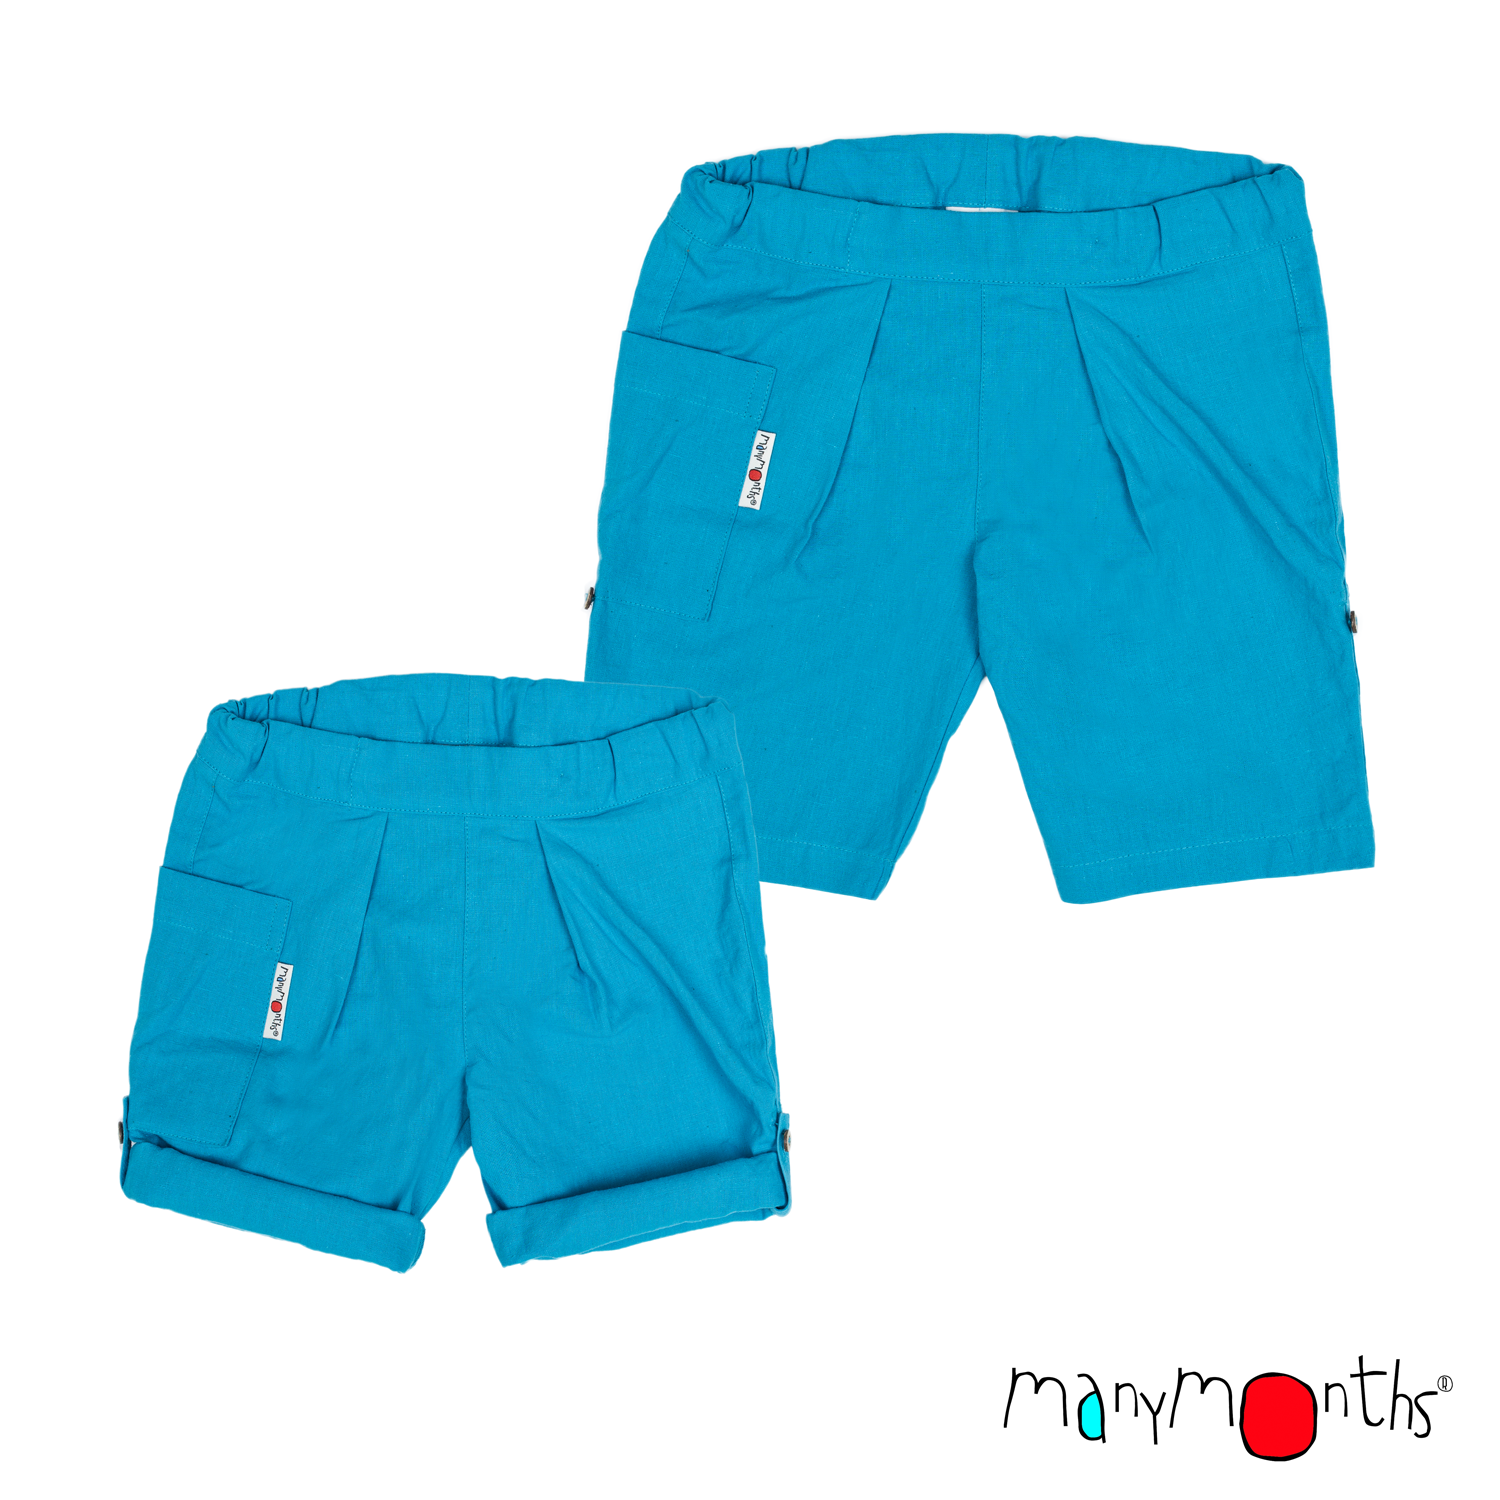 ManyMonths ECO Hempies Unisex Summer Shorts